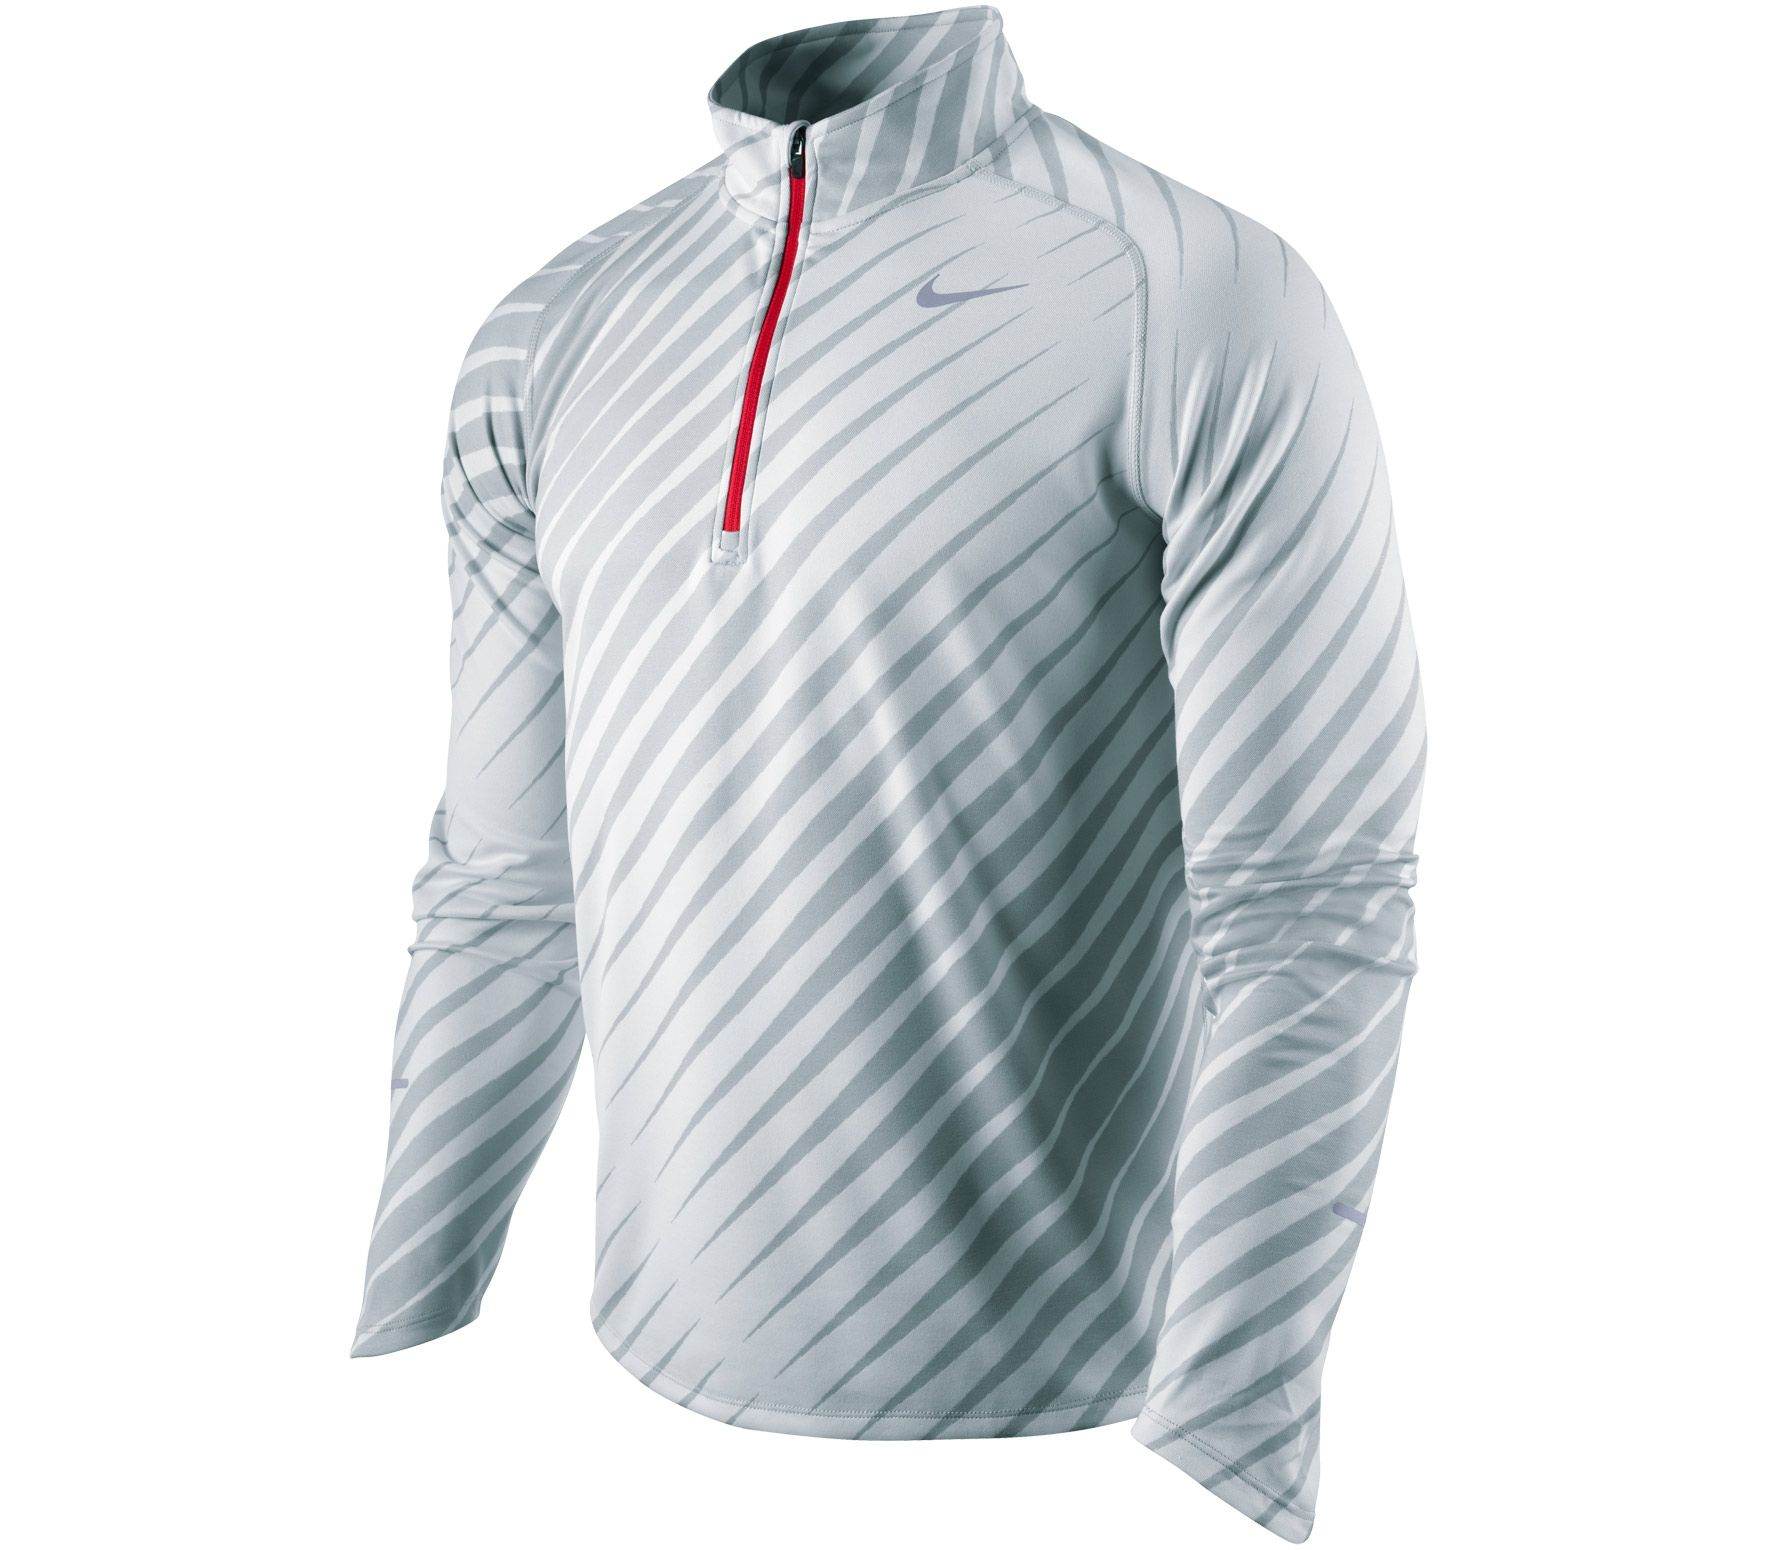 005b57081f Nike - Running shirt Element Jacq 1 2 Zip grey - SP12 running apparel  Running shirt long sleeve for men from Nike for cheap